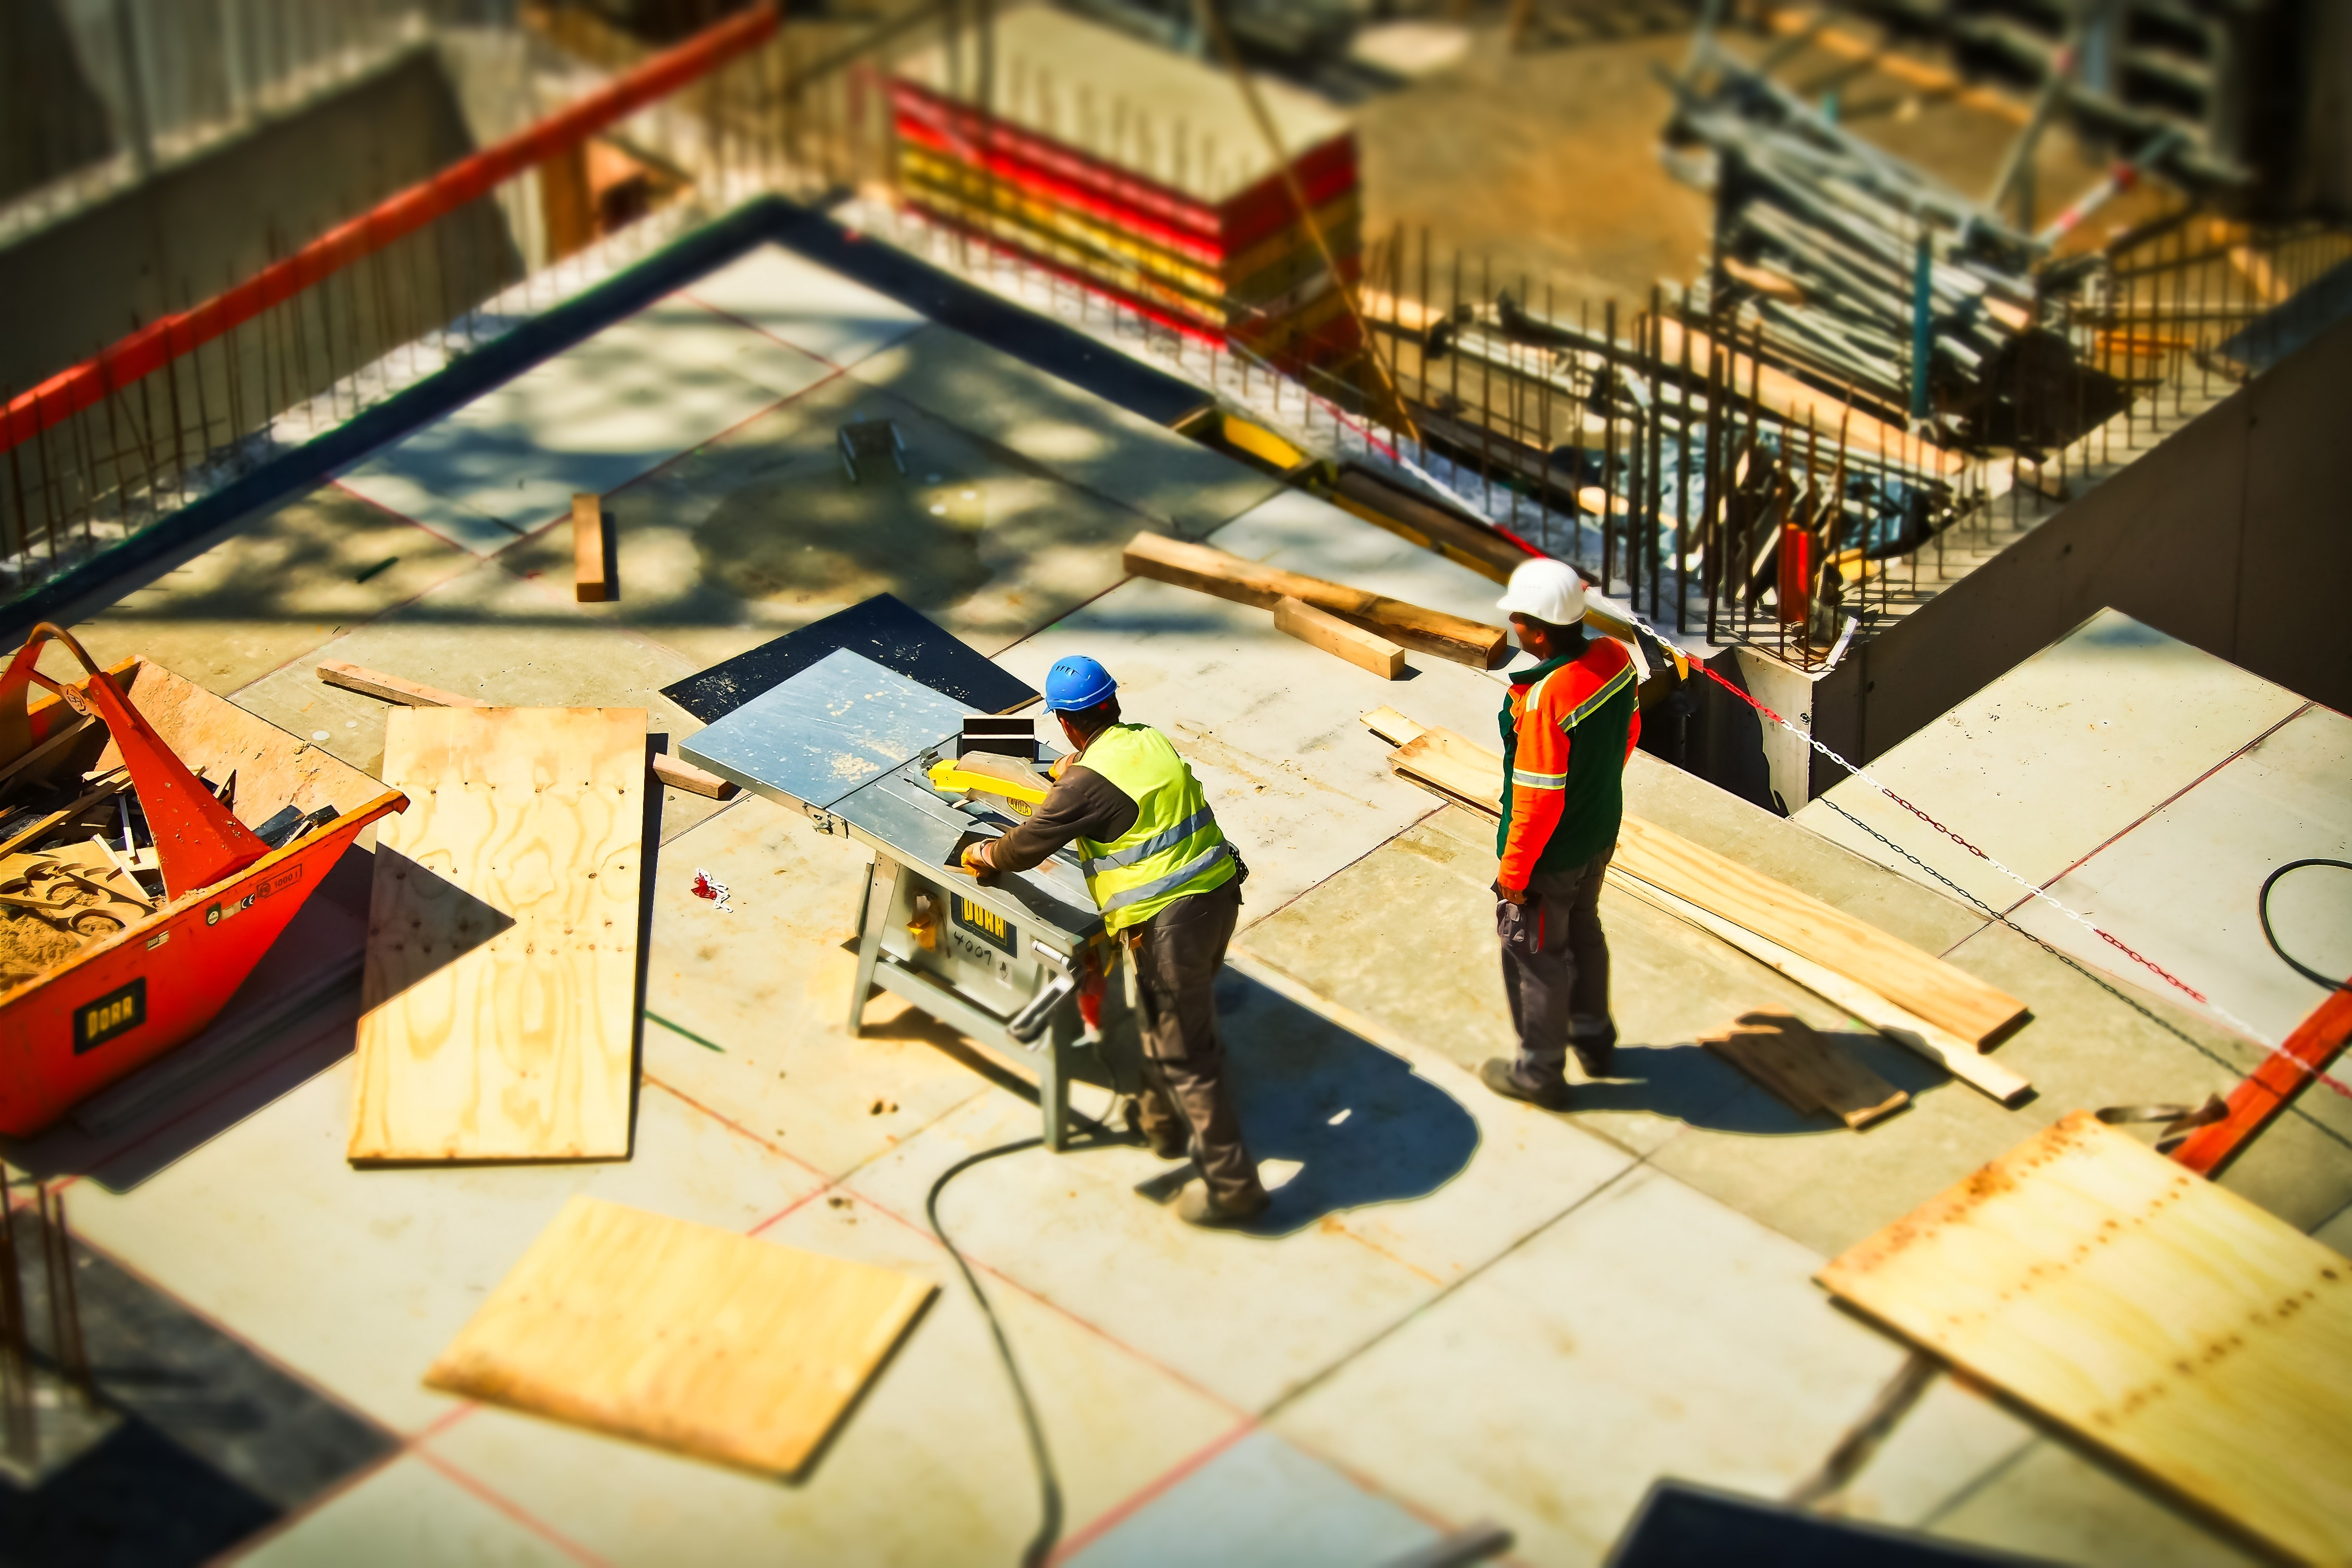 OSHA Construction Industry 30 Hour EQ+ Course Review & Competency Exam – $99.95